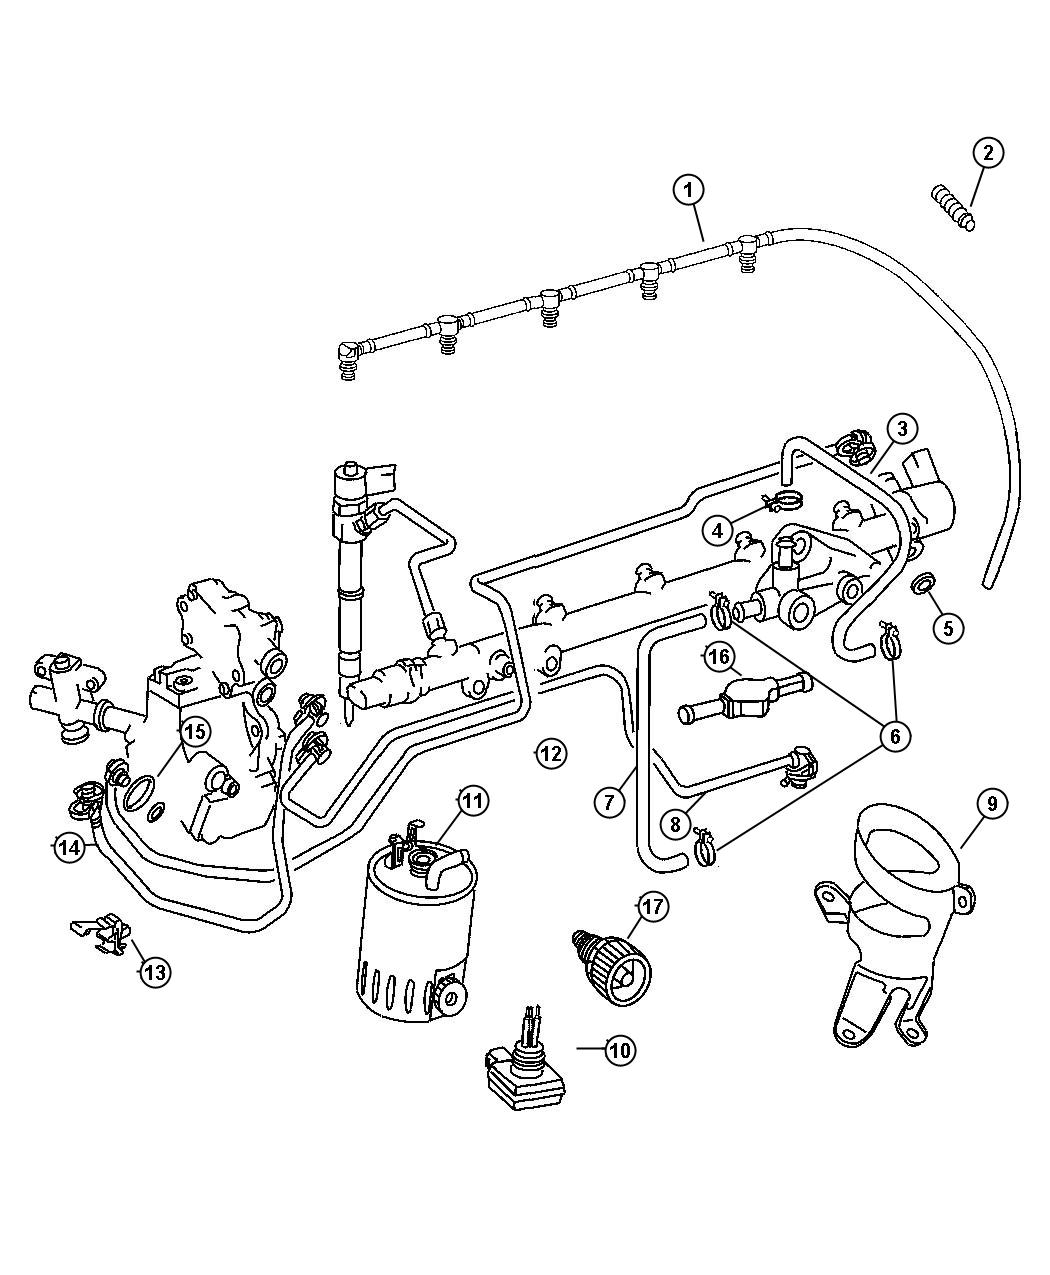 1999 Chevy 1500 Wiring Diagram, 1999, Free Engine Image